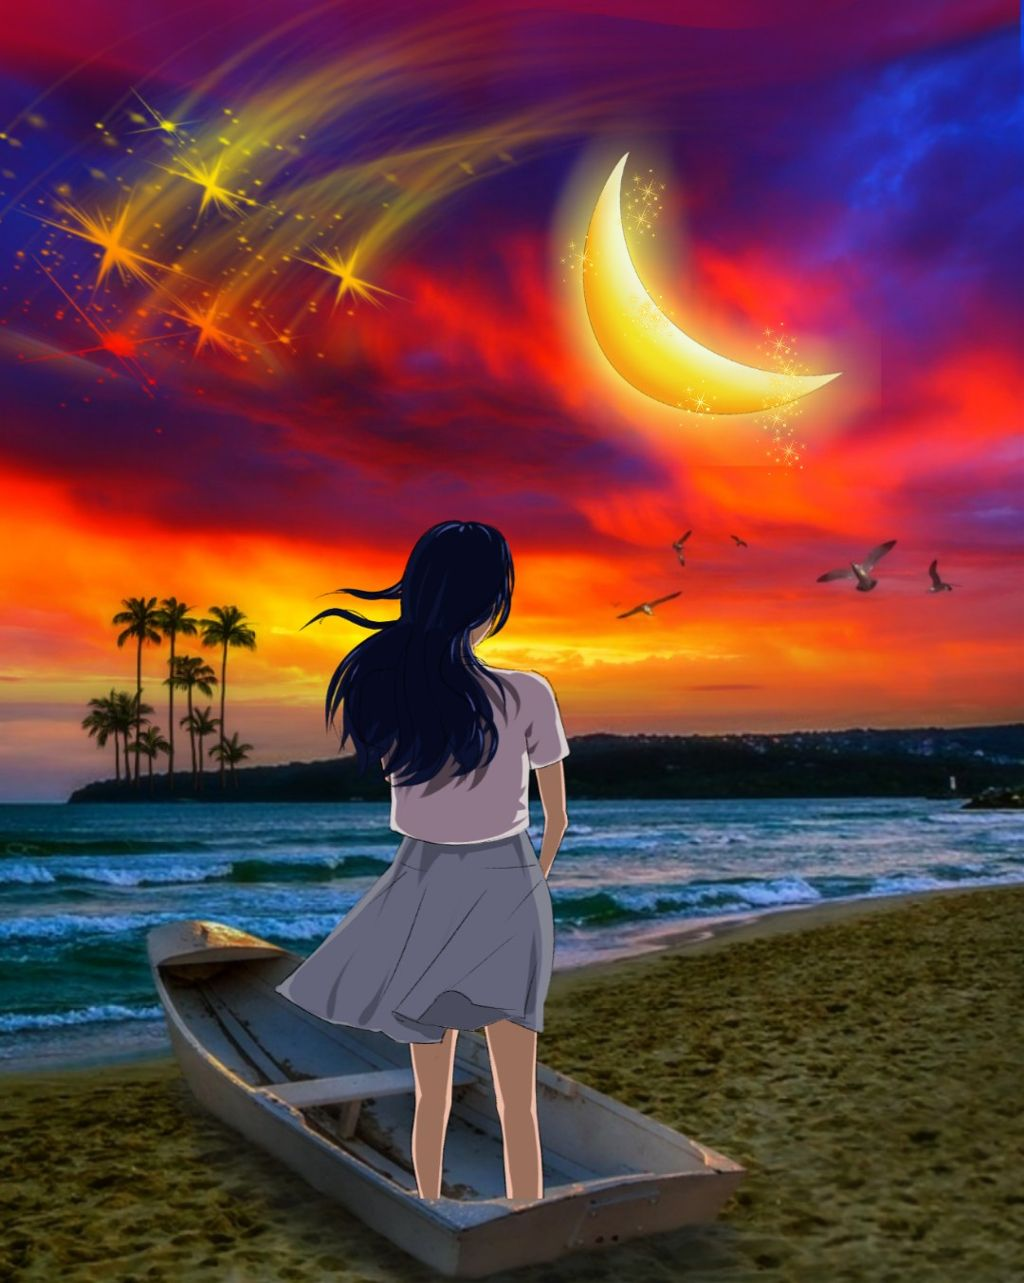 #freetoedit #landscape #scenery #lakeside #nightsky #moonlight #shootingstars  #fallingstars #boat #girl #skylovers #skyporn #naturesbeauty #colors #colorful #colorlove #mixedmedia #photomanipulation #picsarteffects #editstepbystep #myedit #madewithpicsart